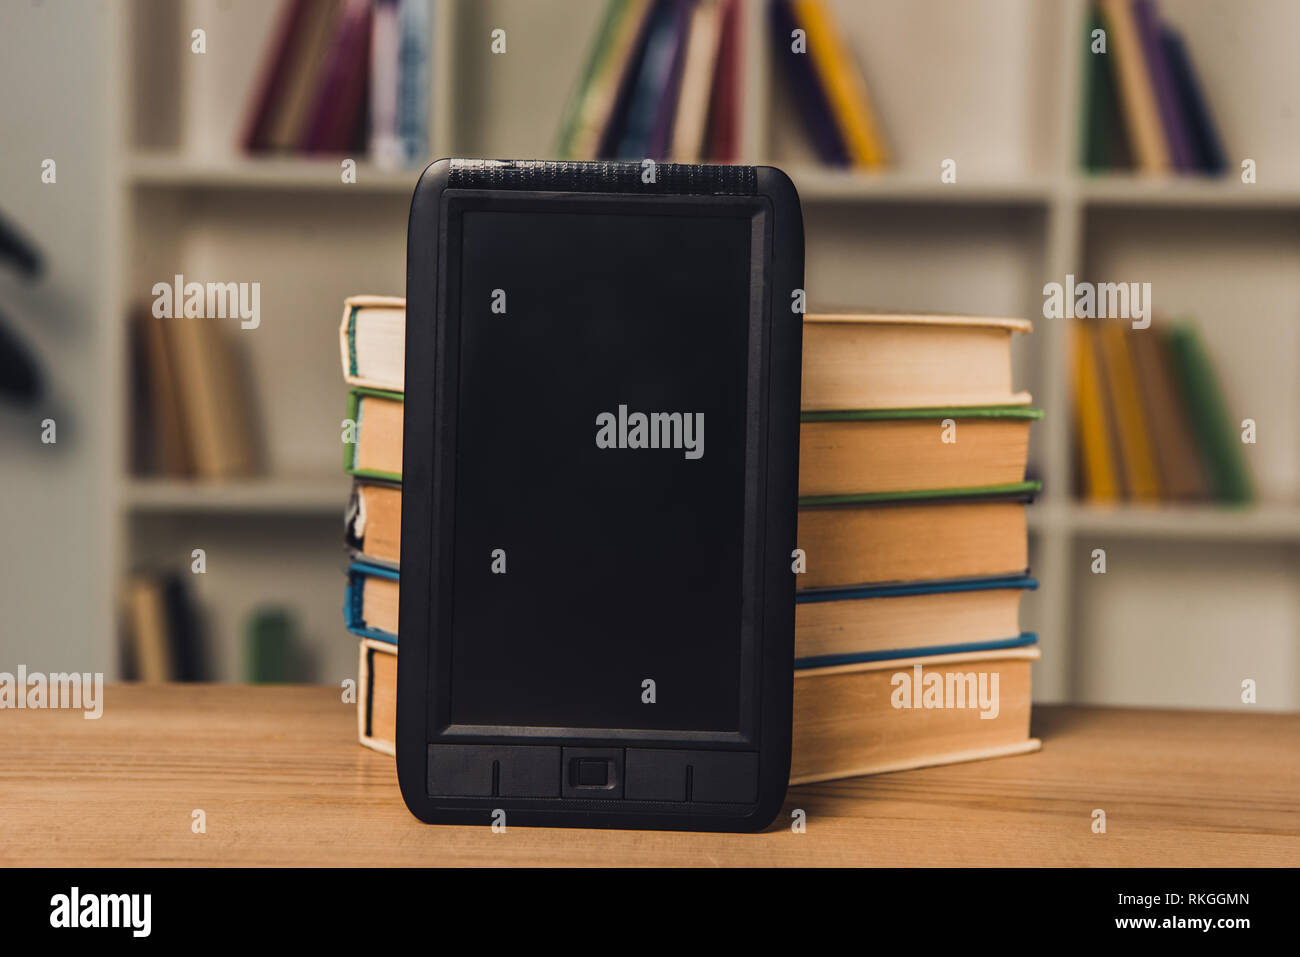 e-book with blank screen near paper books on table - Stock Image